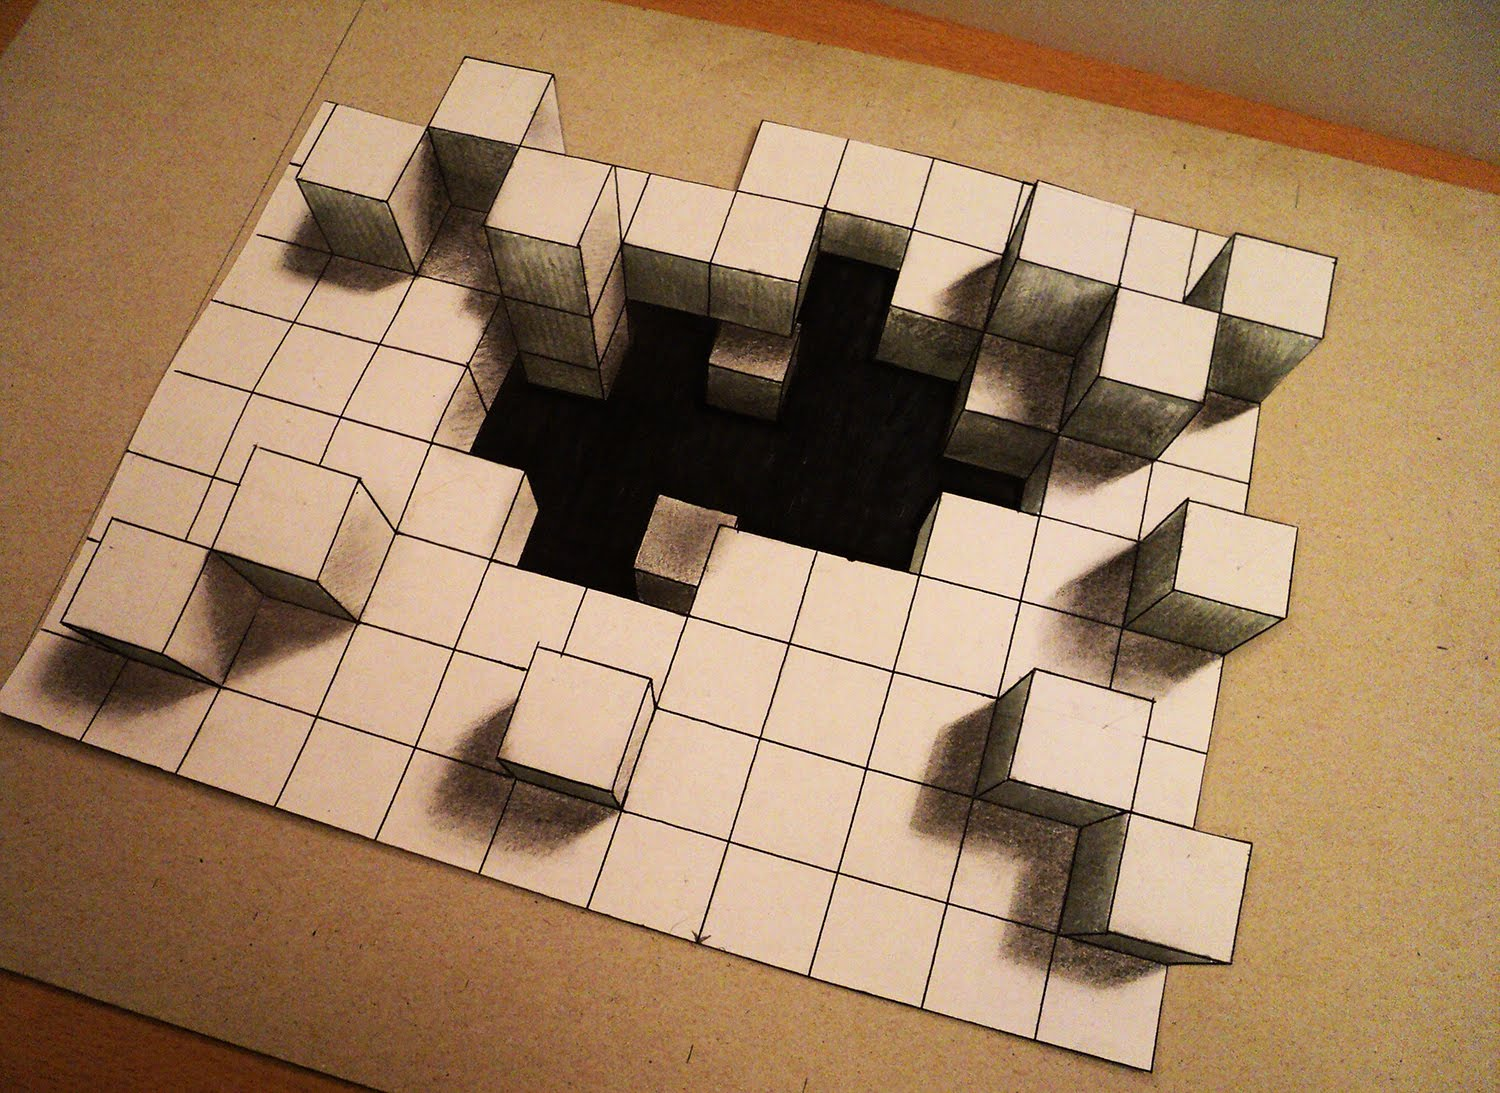 Drawn optical illusion perspective drawing How to one cubes 3d